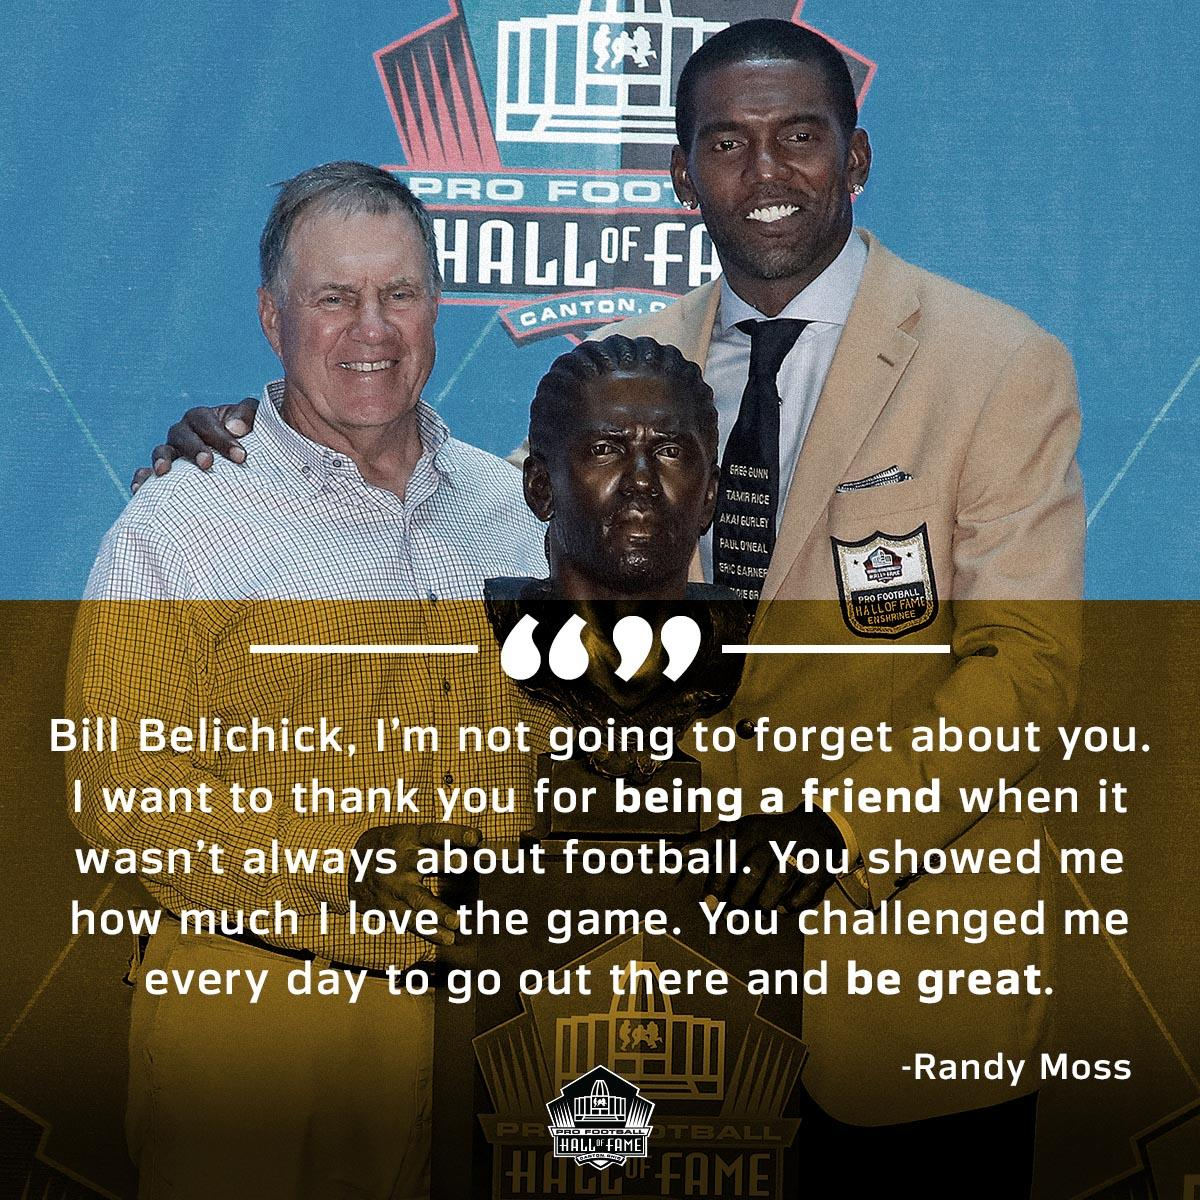 The bond between @RandyMoss and Belichick is special.  #PFHOF18